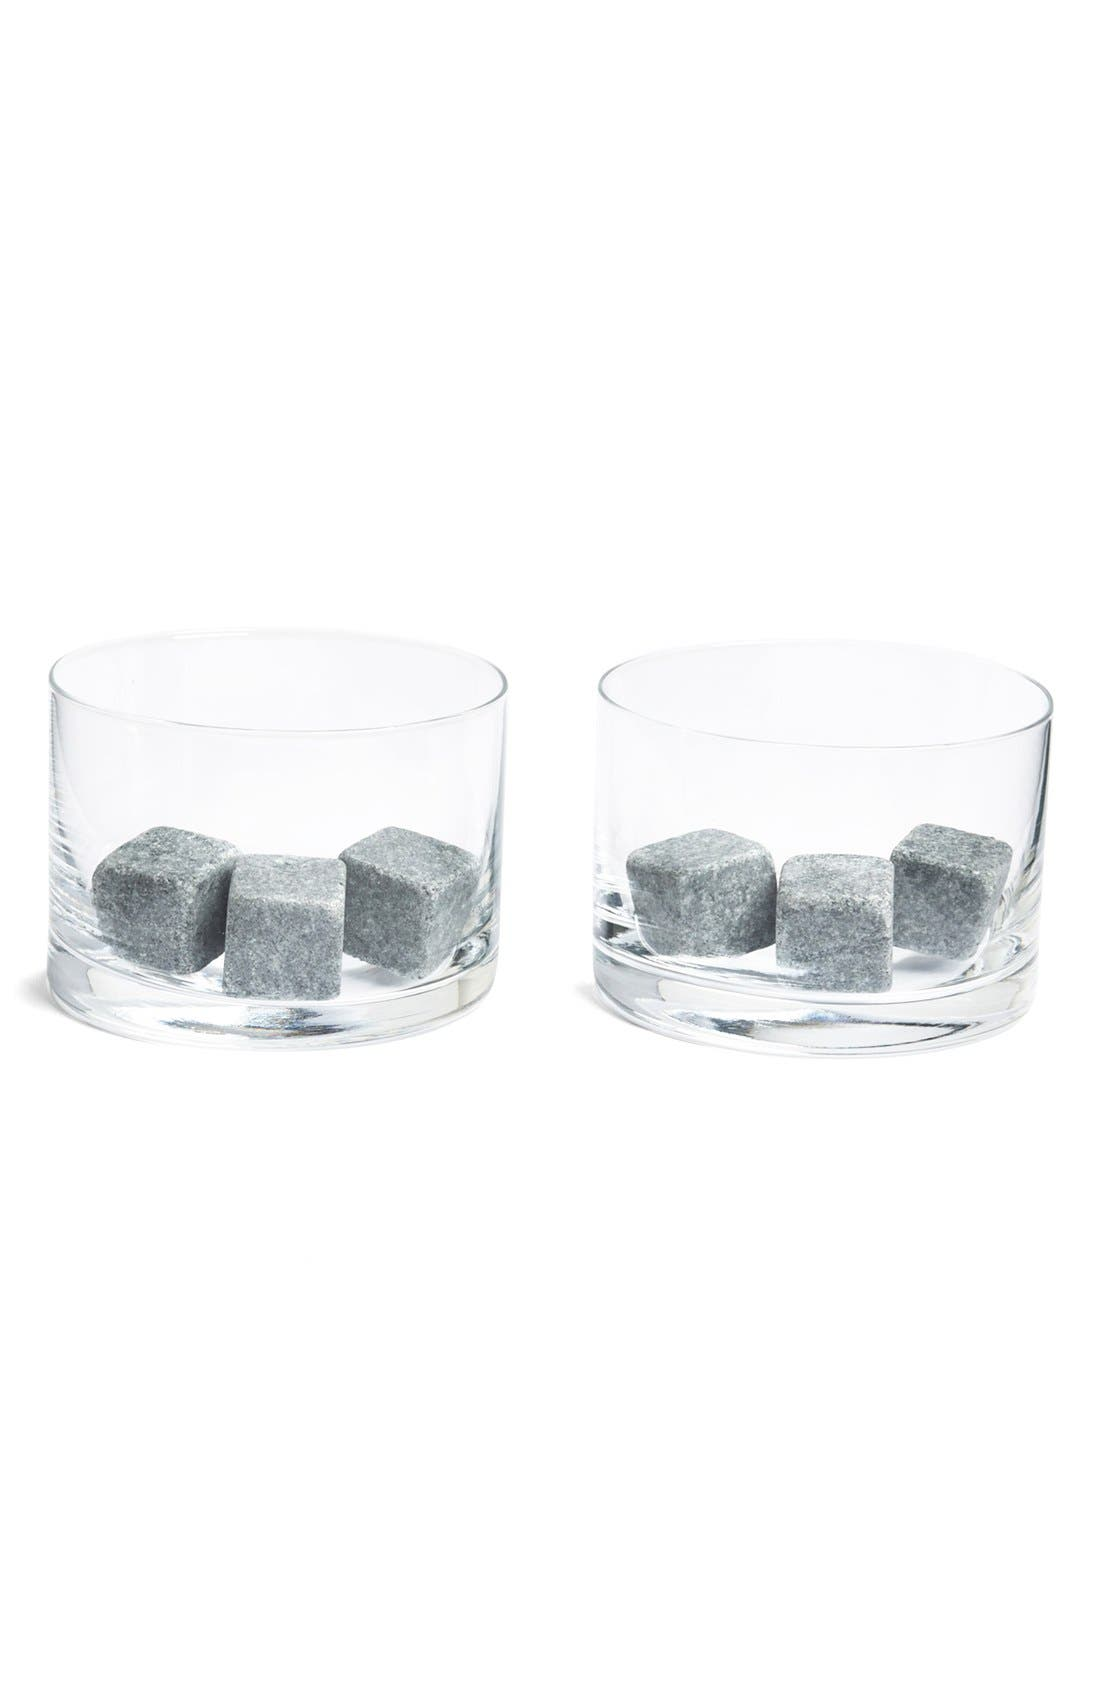 Alternate Image 1 Selected - Teroforma 'Whisky for Two' Tumbler and Beverage Cube Set